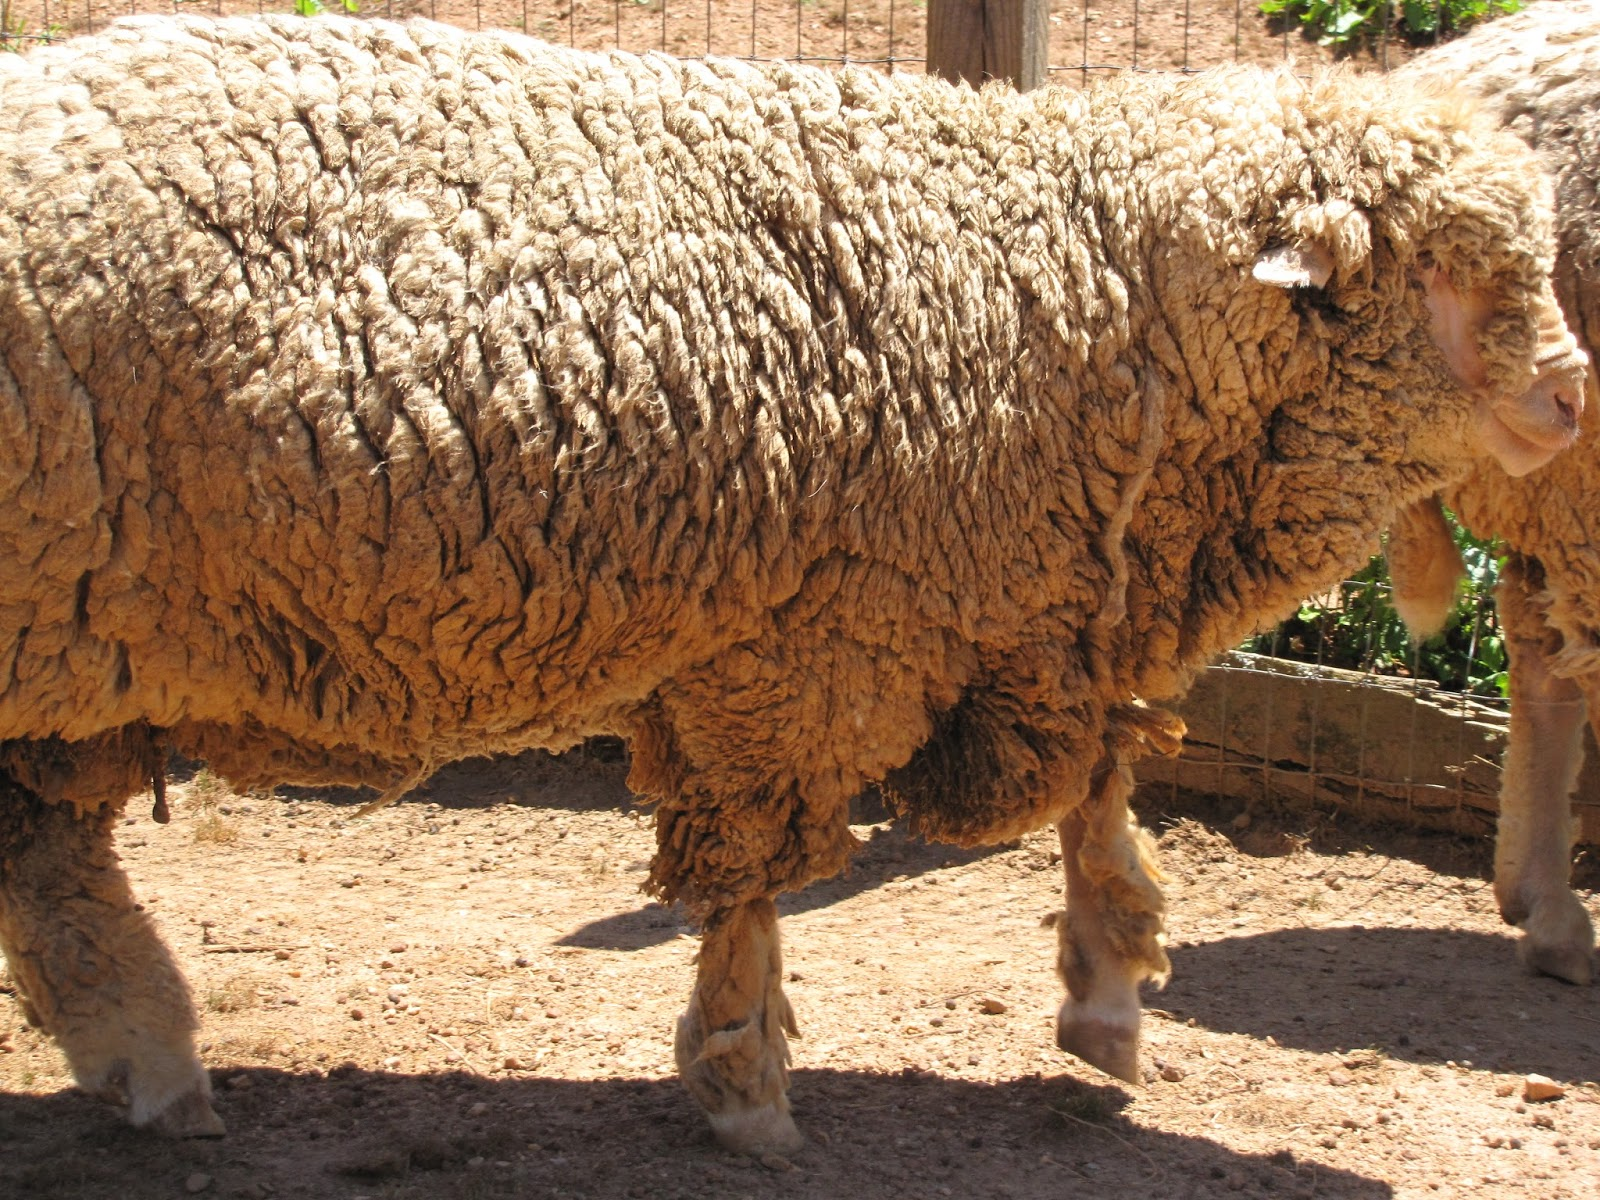 A Cast Sheep Is Very Pathetic Sight Lying On Its Back Feet In The Air It Flays Away Frantically Struggling To Stand Up Without Success